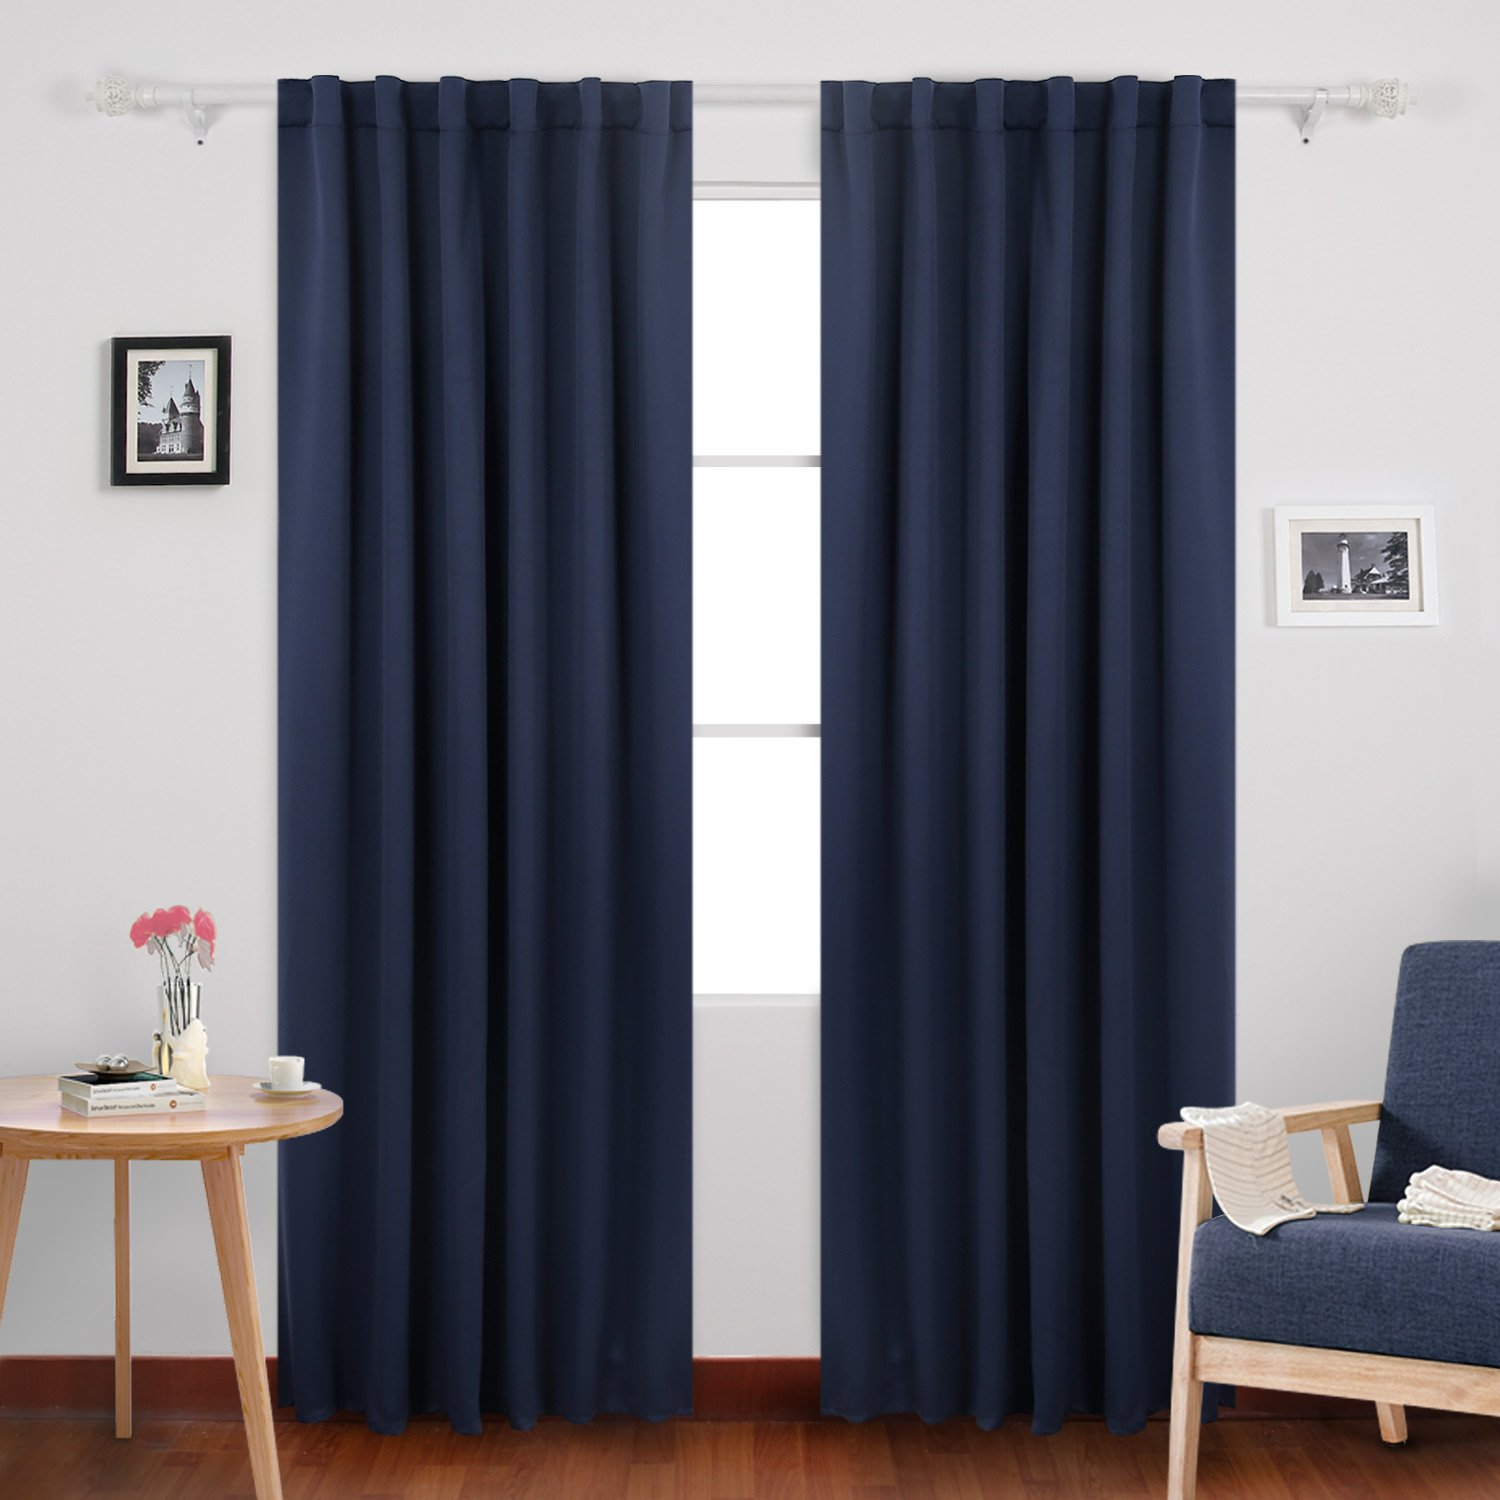 Cheap Color Curtains, find Color Curtains deals on line at Alibaba.com